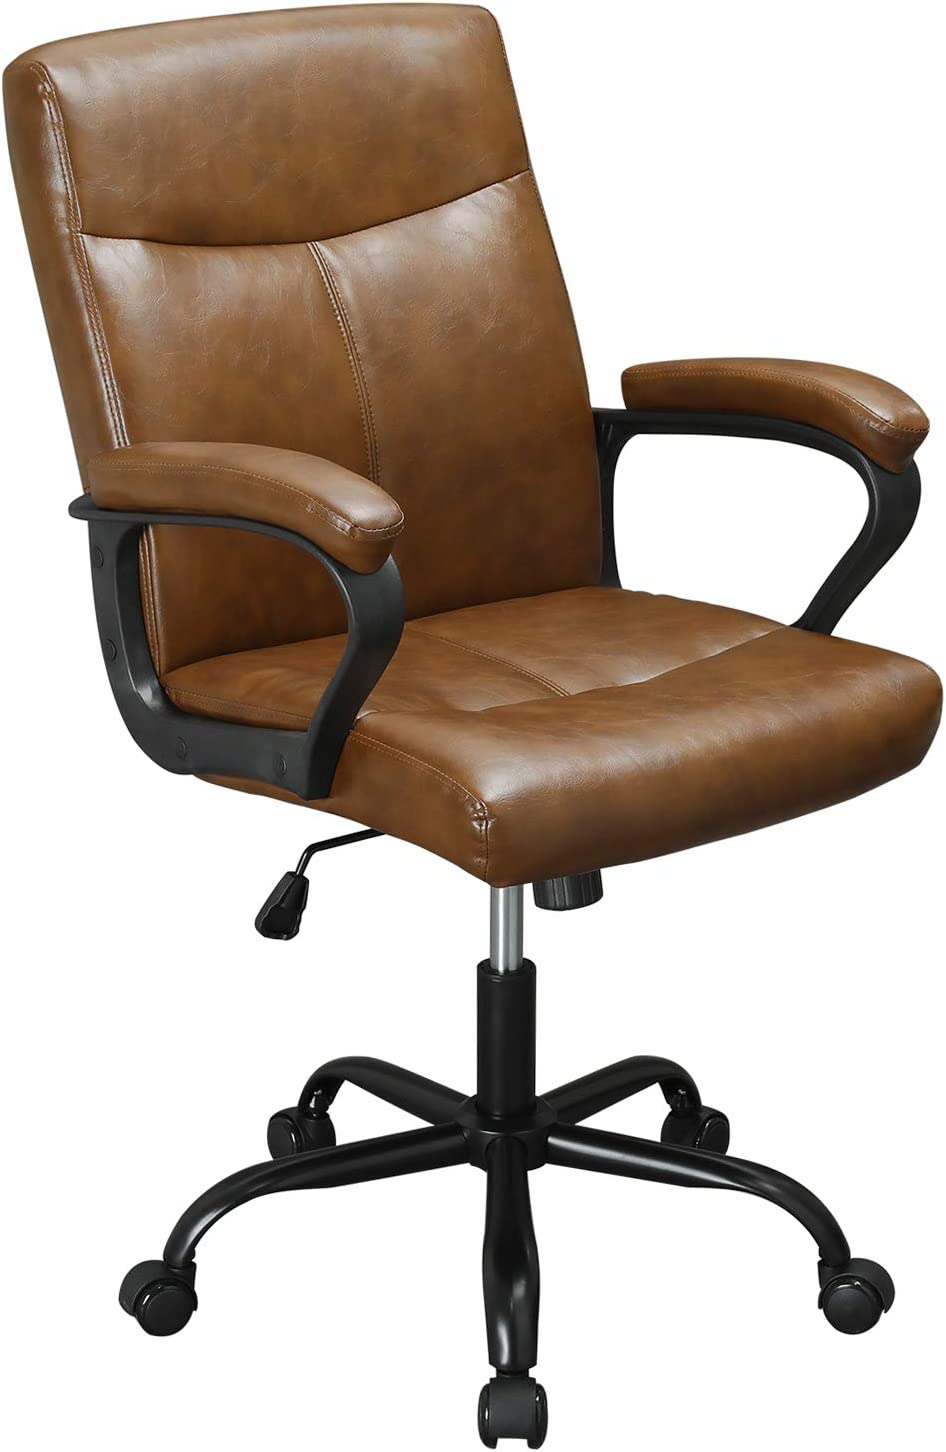 DICTAC Leather Home Office Chair Ergonomic Desk Chair Mid Back Computer Chair Adjustable Executive Cahir Swivel Managerial Chair Brown